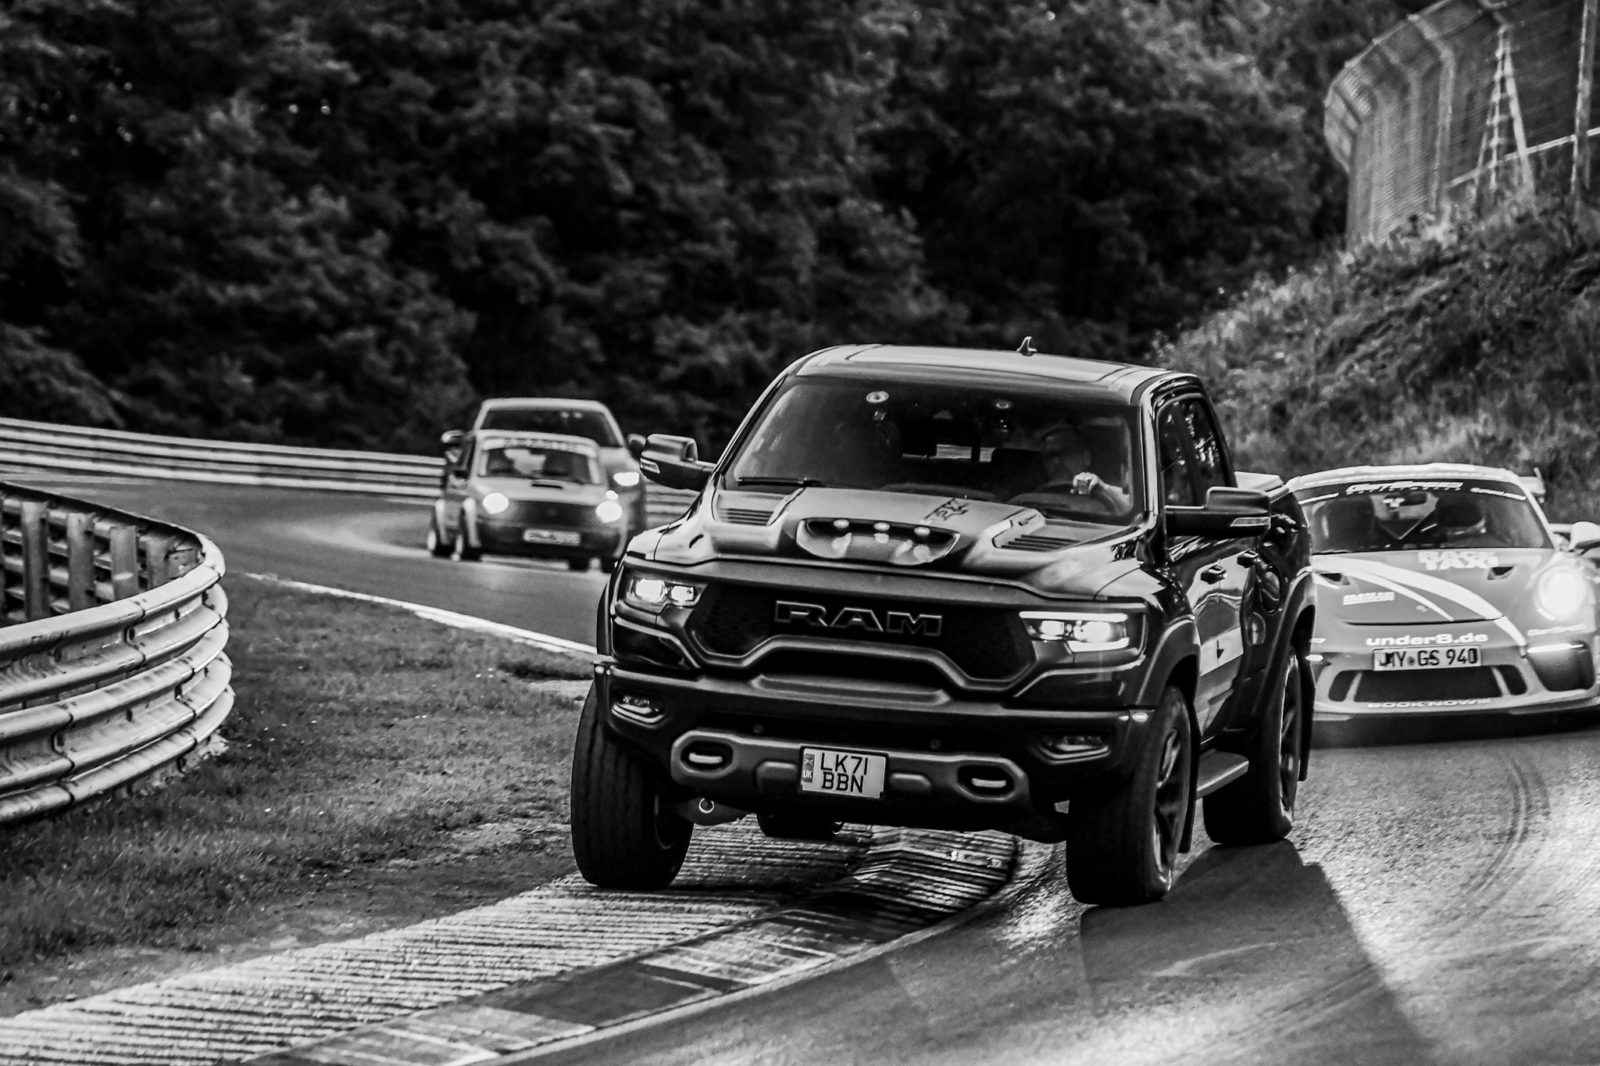 702-hp-ram-trx-is-unleashed-on-the-green-hell,-trouble-ahead